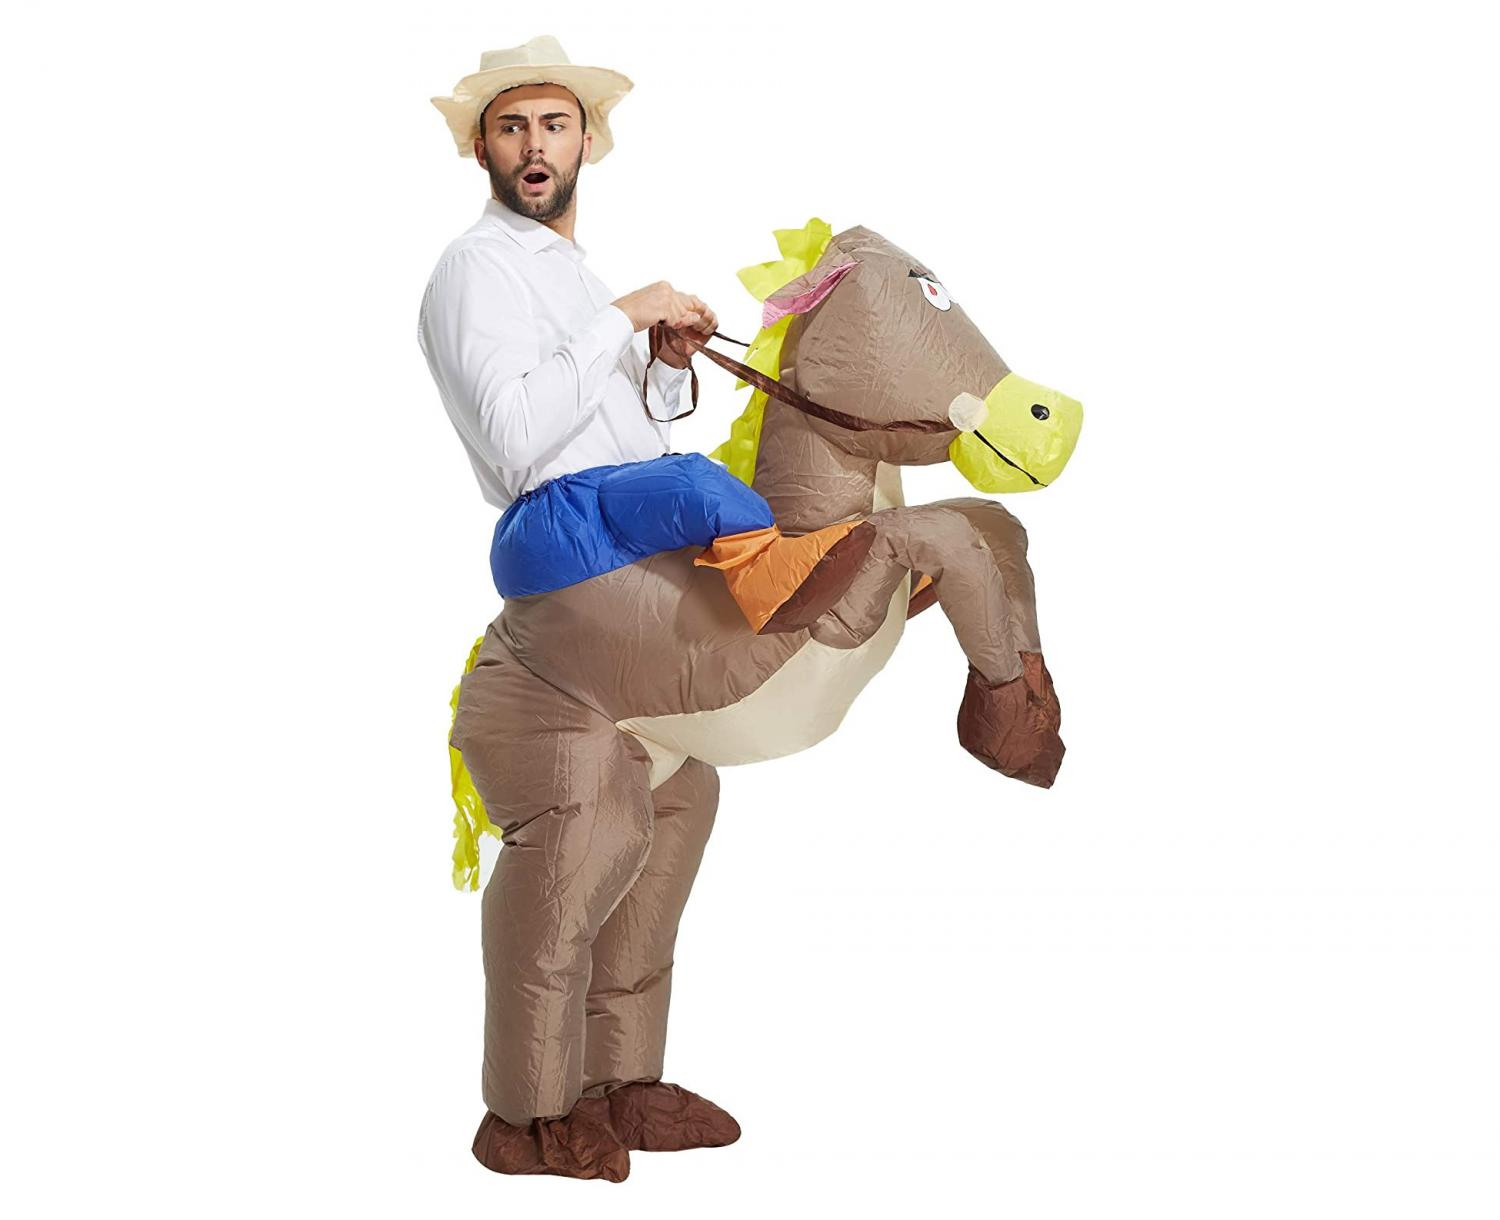 Ride-On Horse Costume That's Inflatable